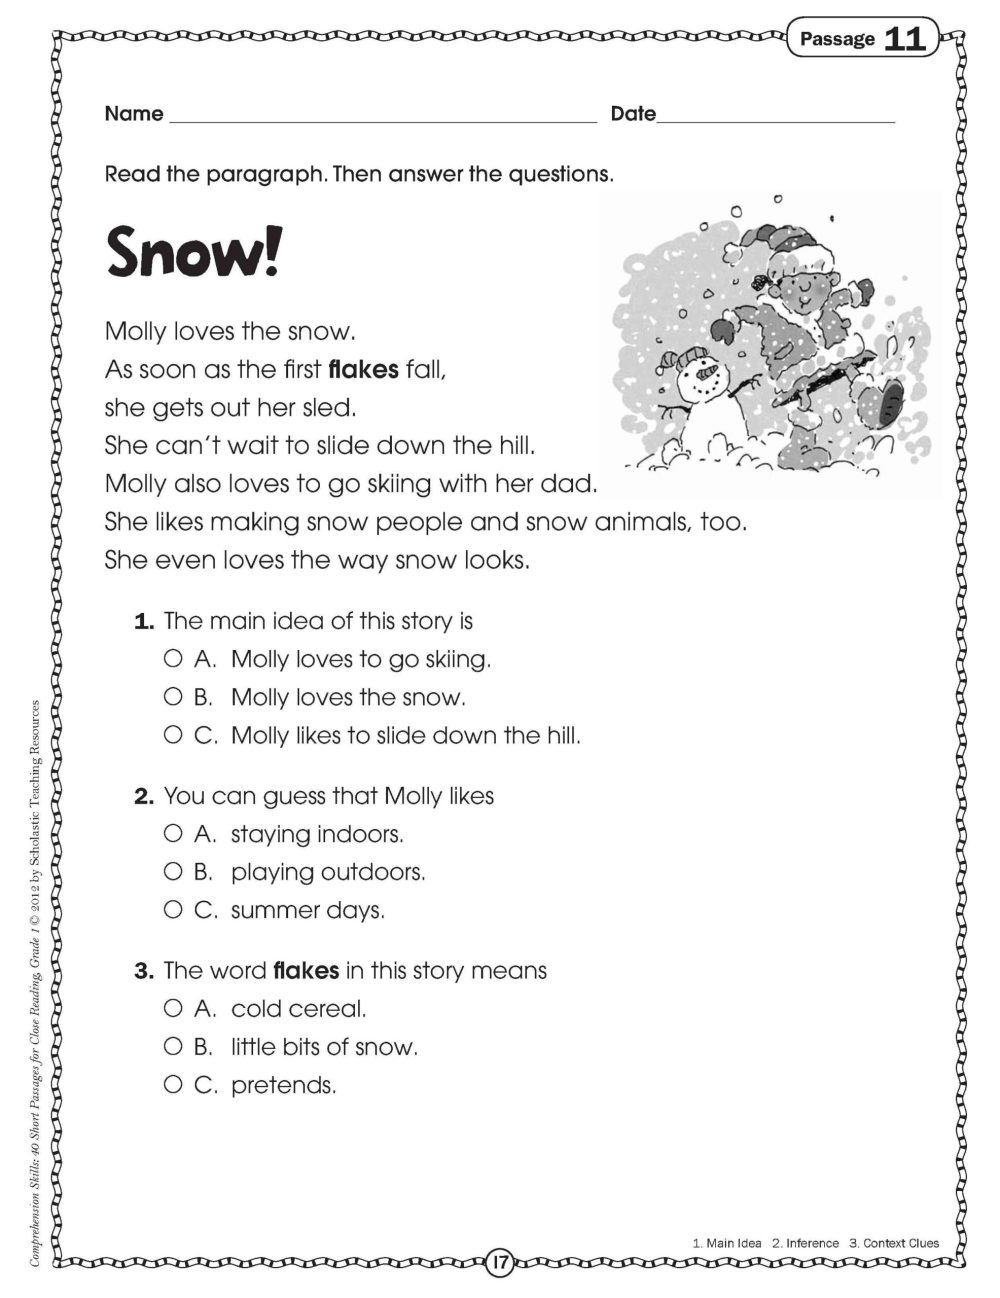 medium resolution of Christmas Language Arts Worksheet 3rd   Printable Worksheets and Activities  for Teachers